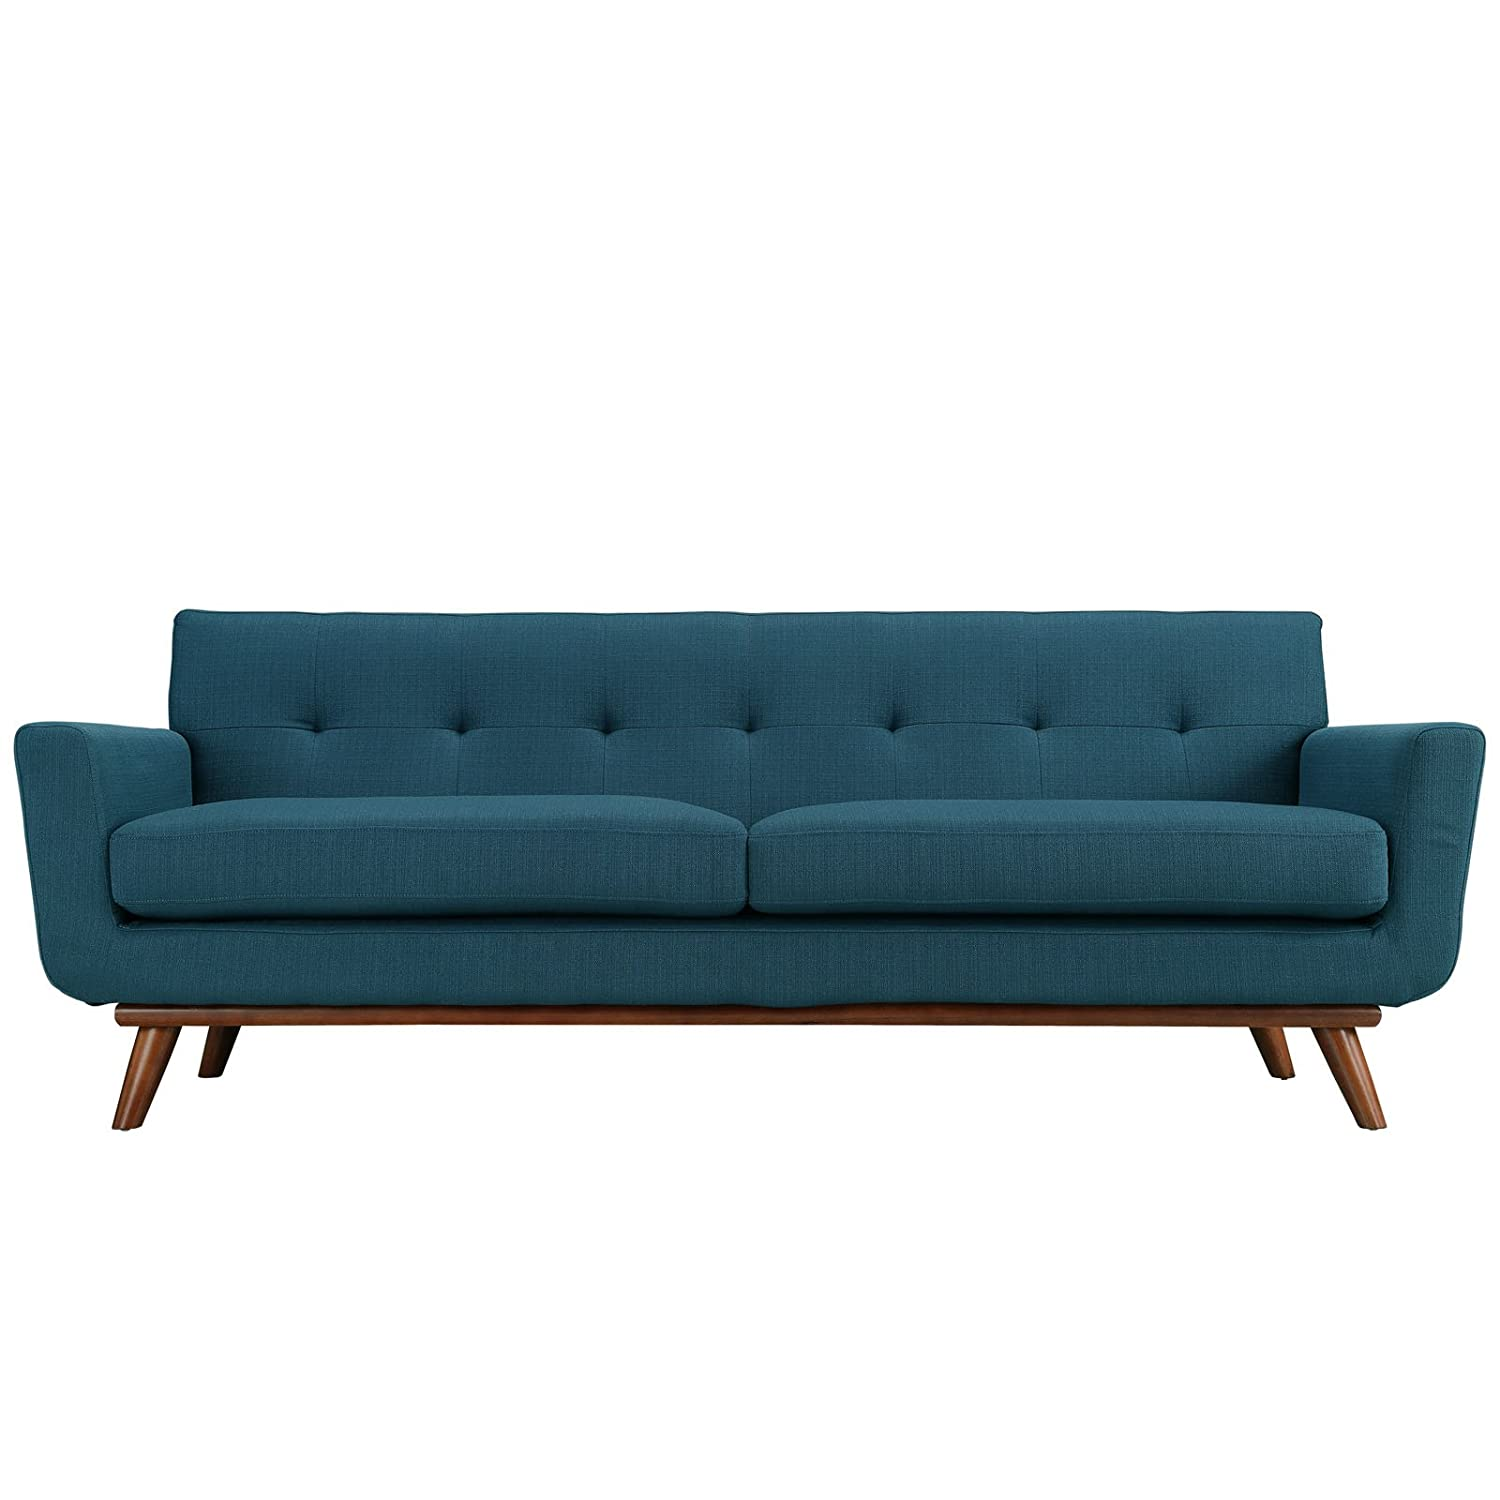 Amazon.com: Modway Engage Mid Century Modern Upholstered Fabric Sofa In  Azure: Kitchen U0026 Dining